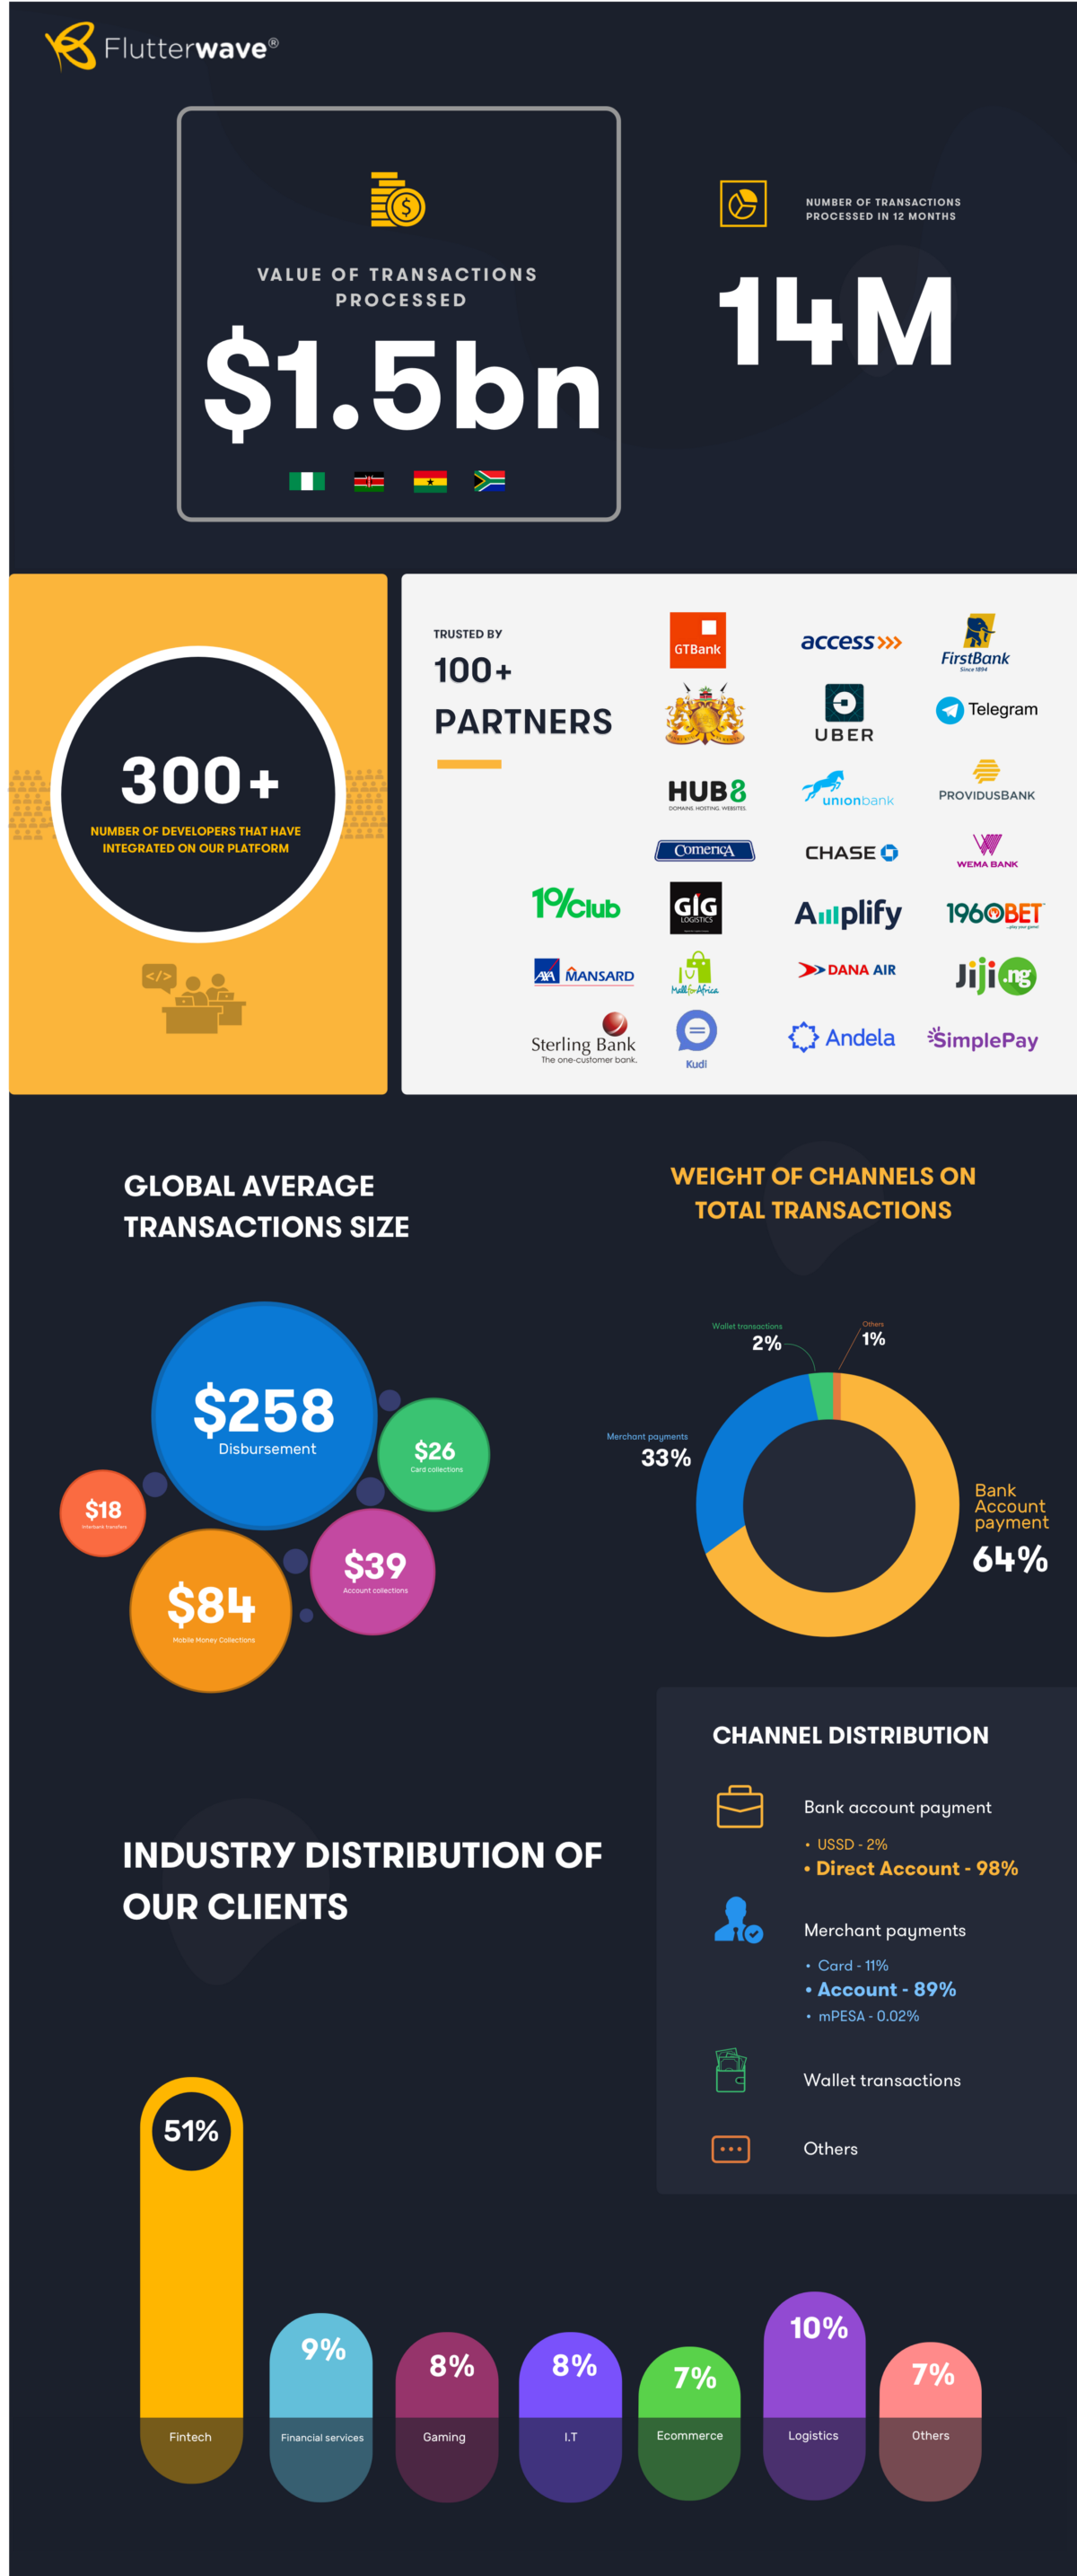 Building Chapter Company Flutterwaves Global Payments Technology Flutterwave S Next Chapter Building A Global Payments Tech In 2020 Technology Chapter Payment